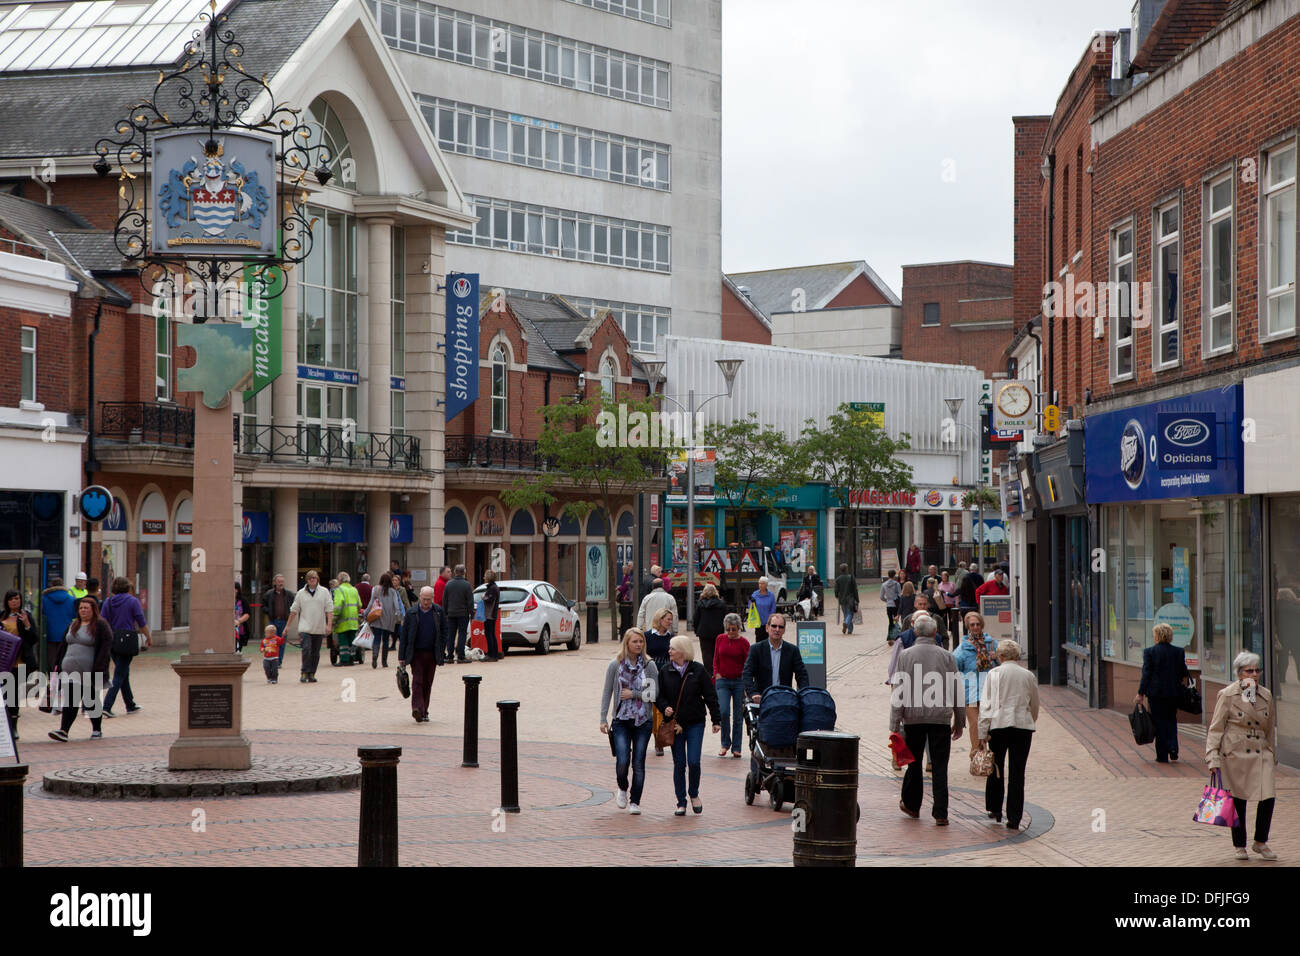 Chelmsford Essex centre, the pedestrianized high street with good access for wheelchairs - Stock Image